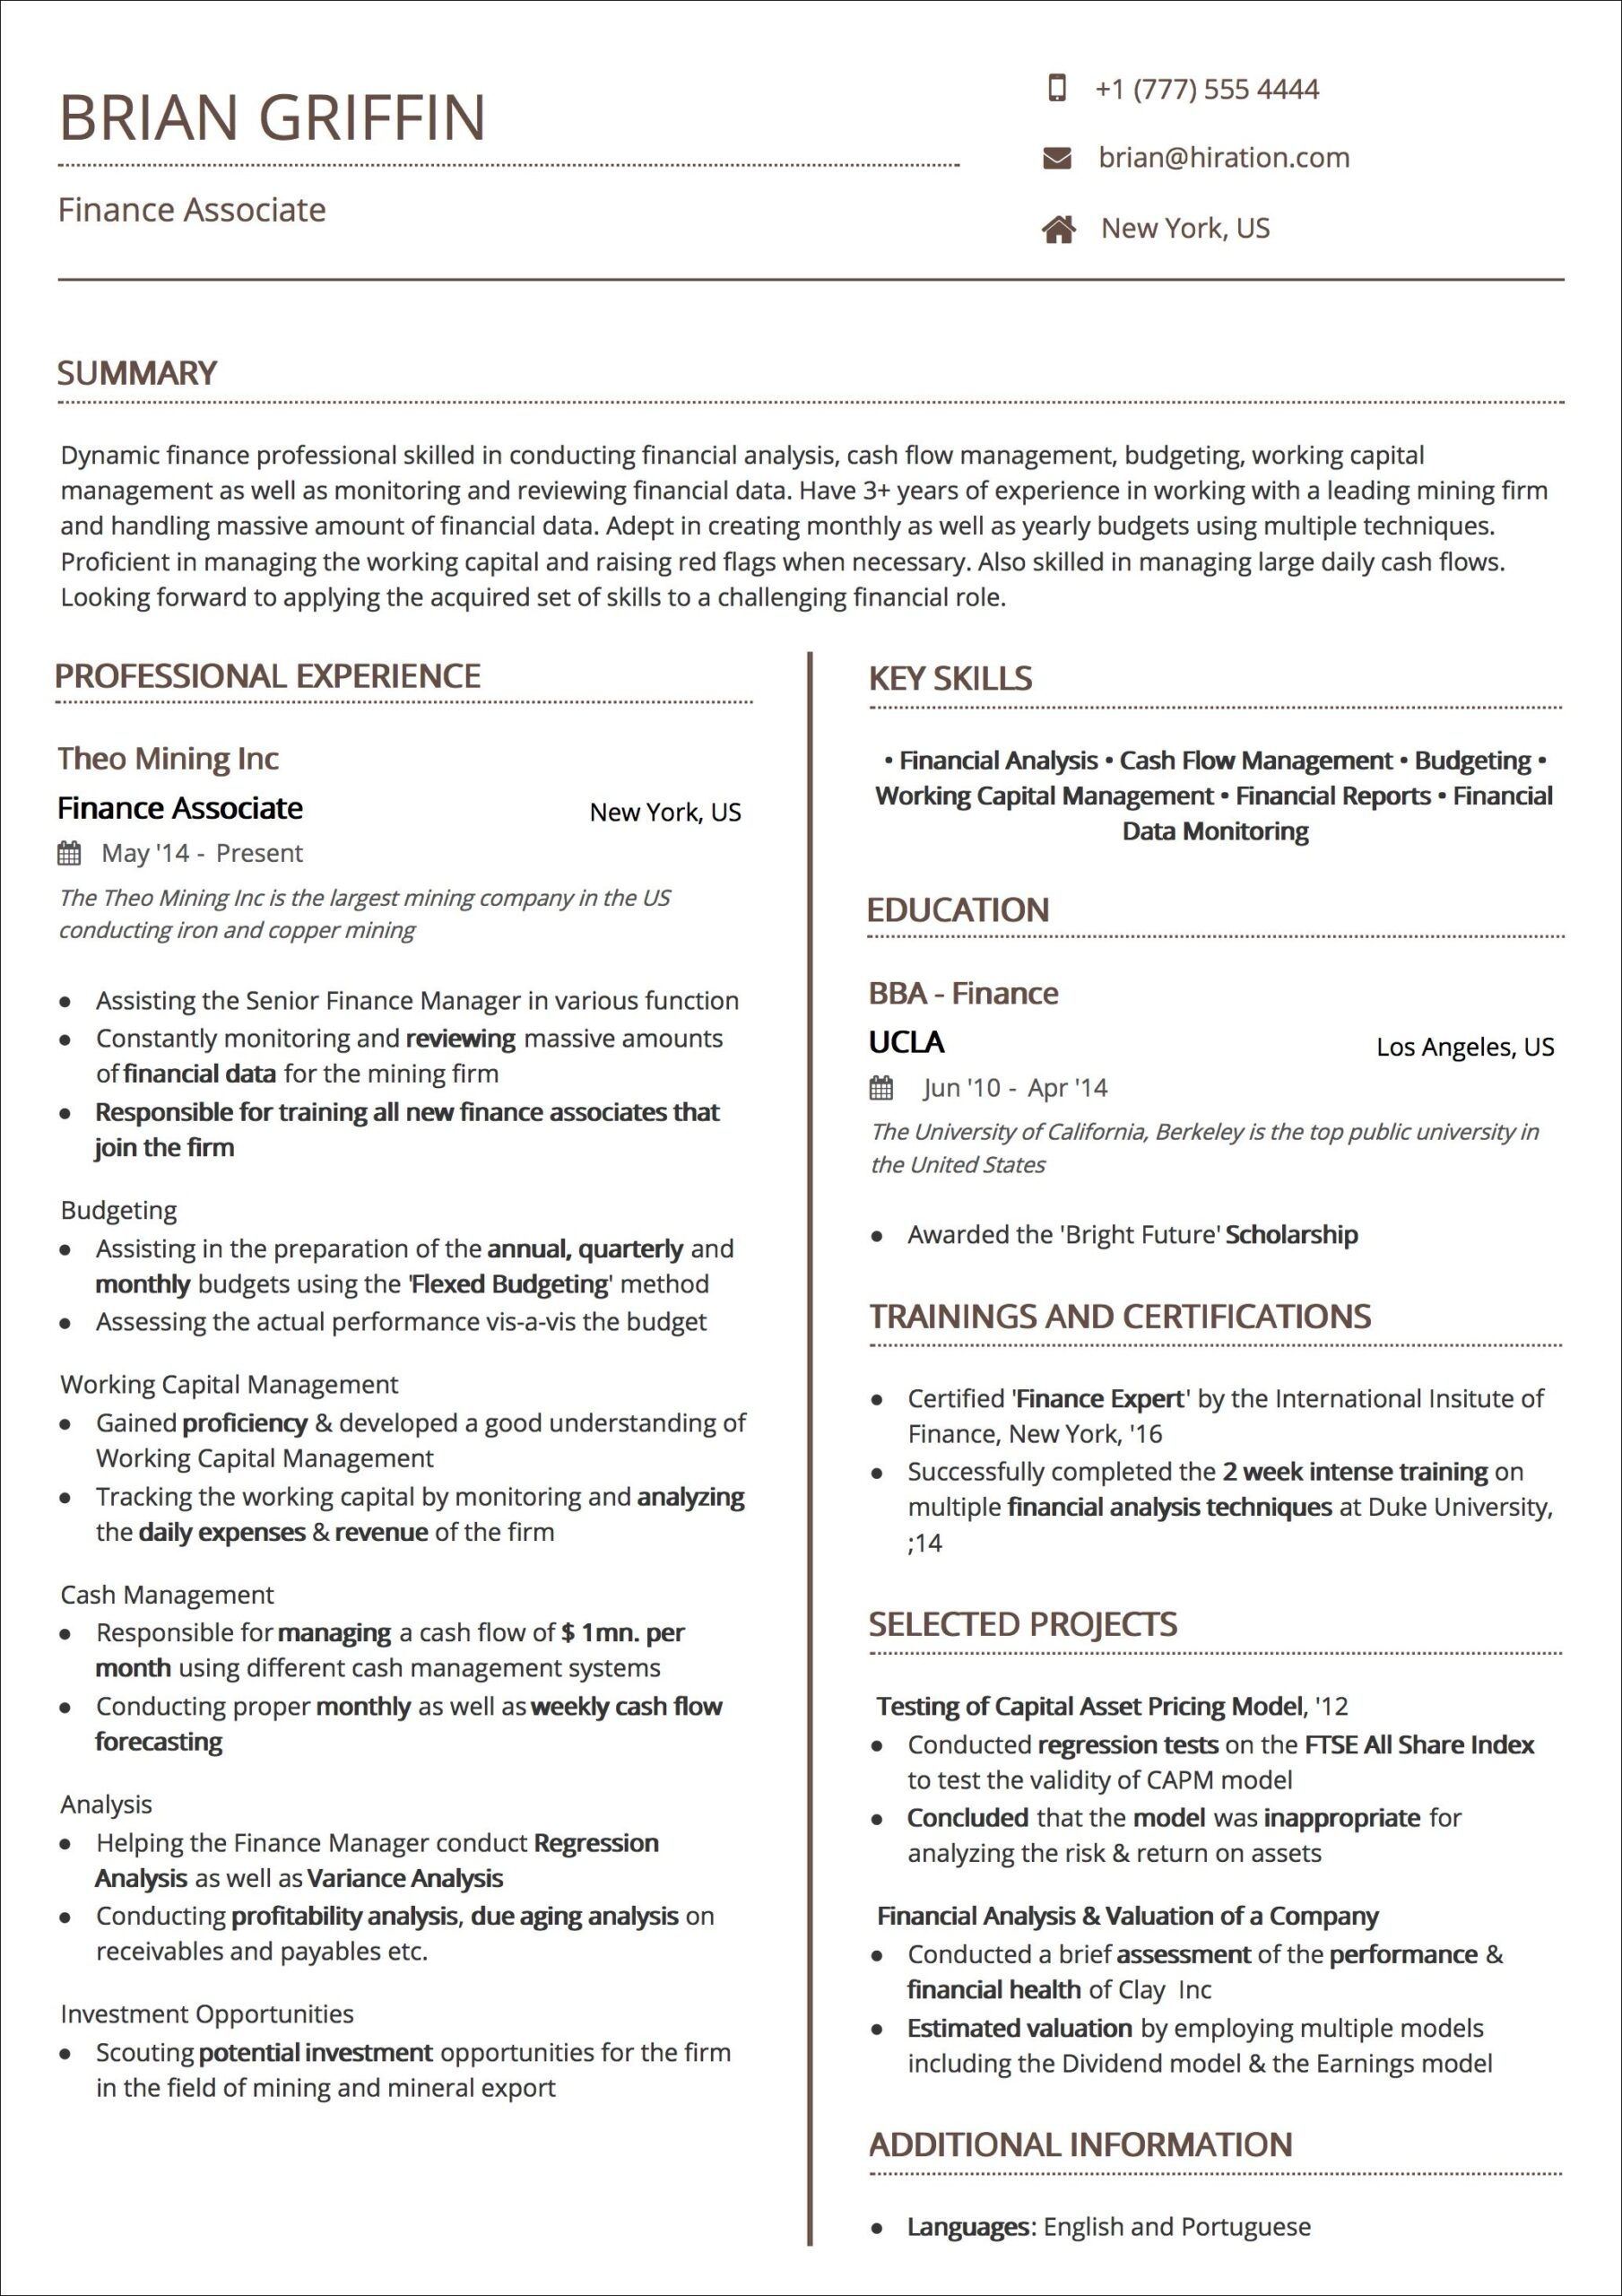 resume templates the guide to choosing best template ats friendly free uniform most Resume Ats Friendly Resume Template Free 2019